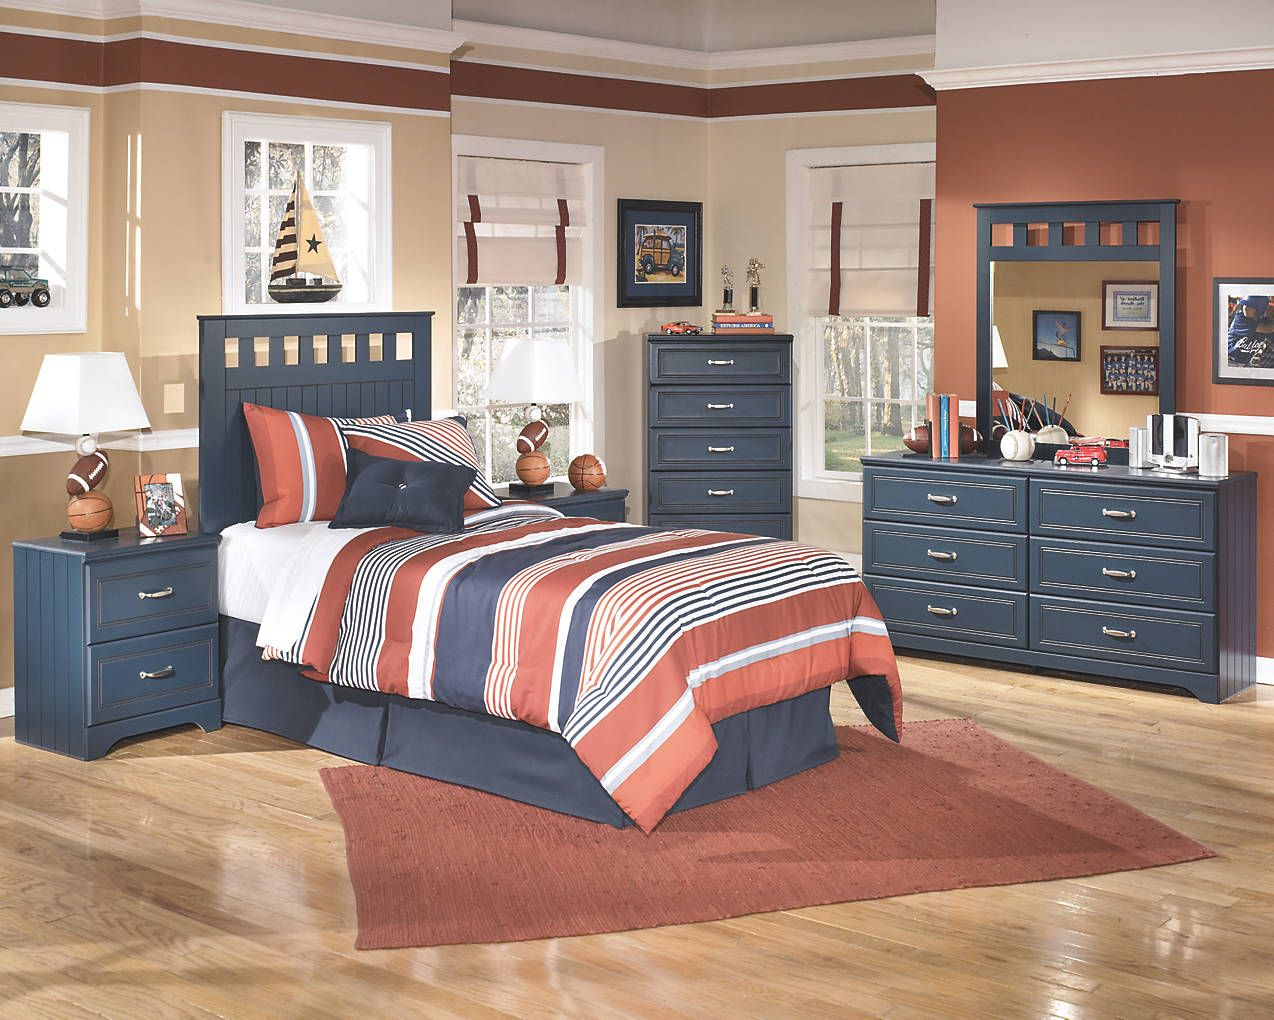 blue youth bedroom sets matching dressers and on Cheap Childrens Bedroom Furniture Sets id=22162